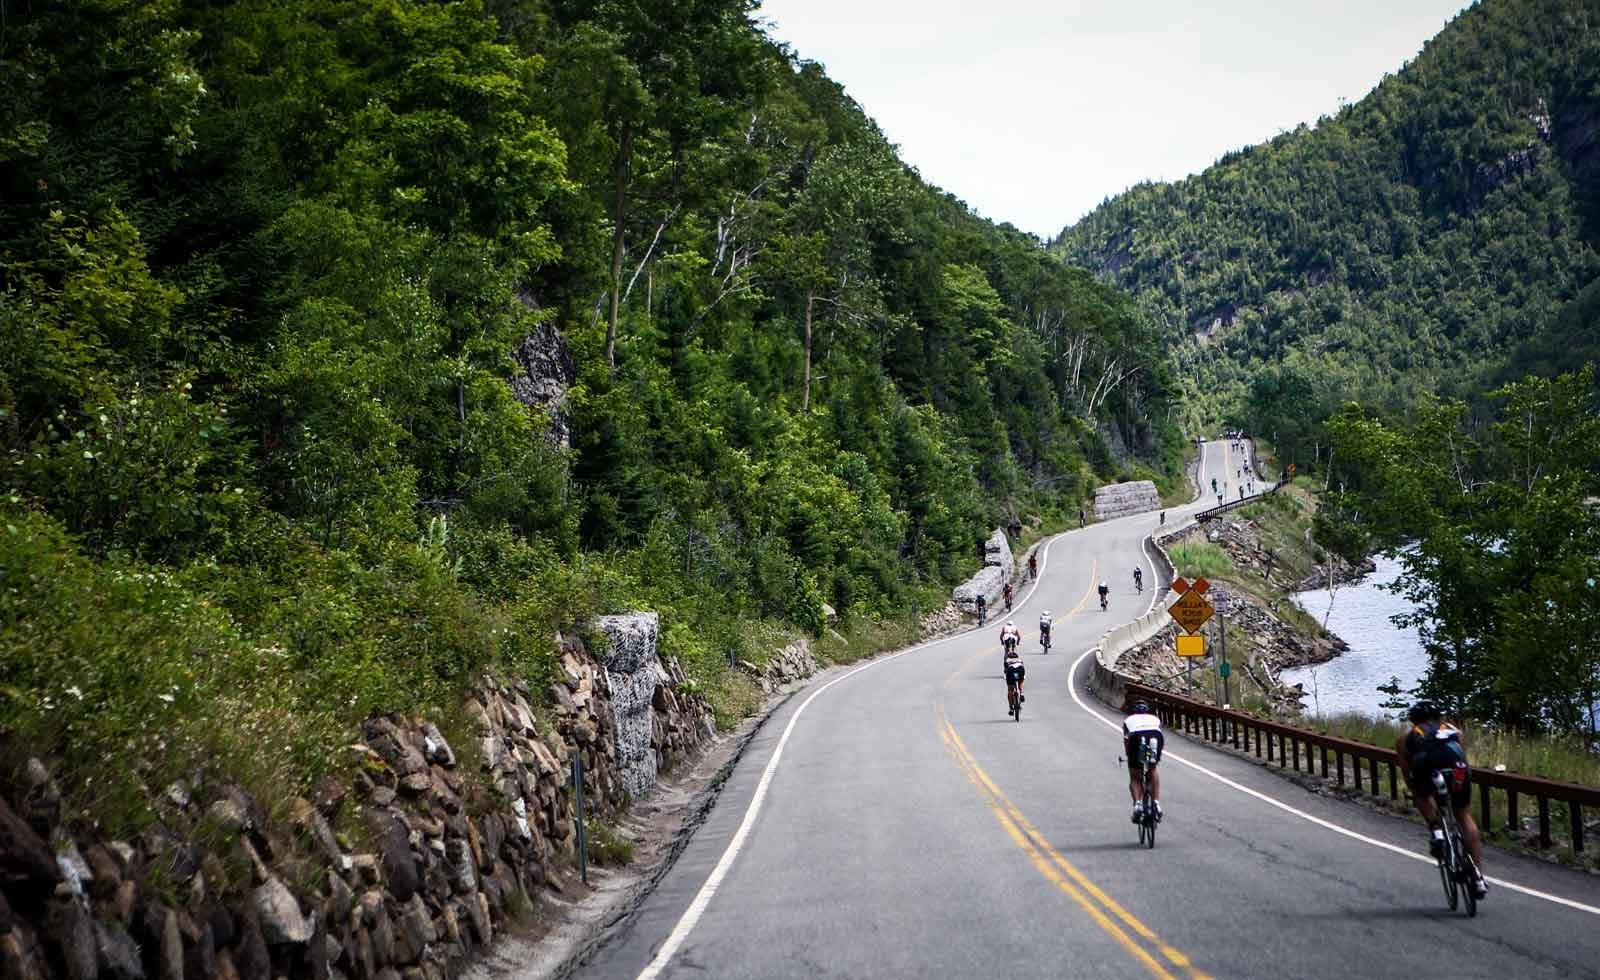 Bikers during an Ironman race on paved road.